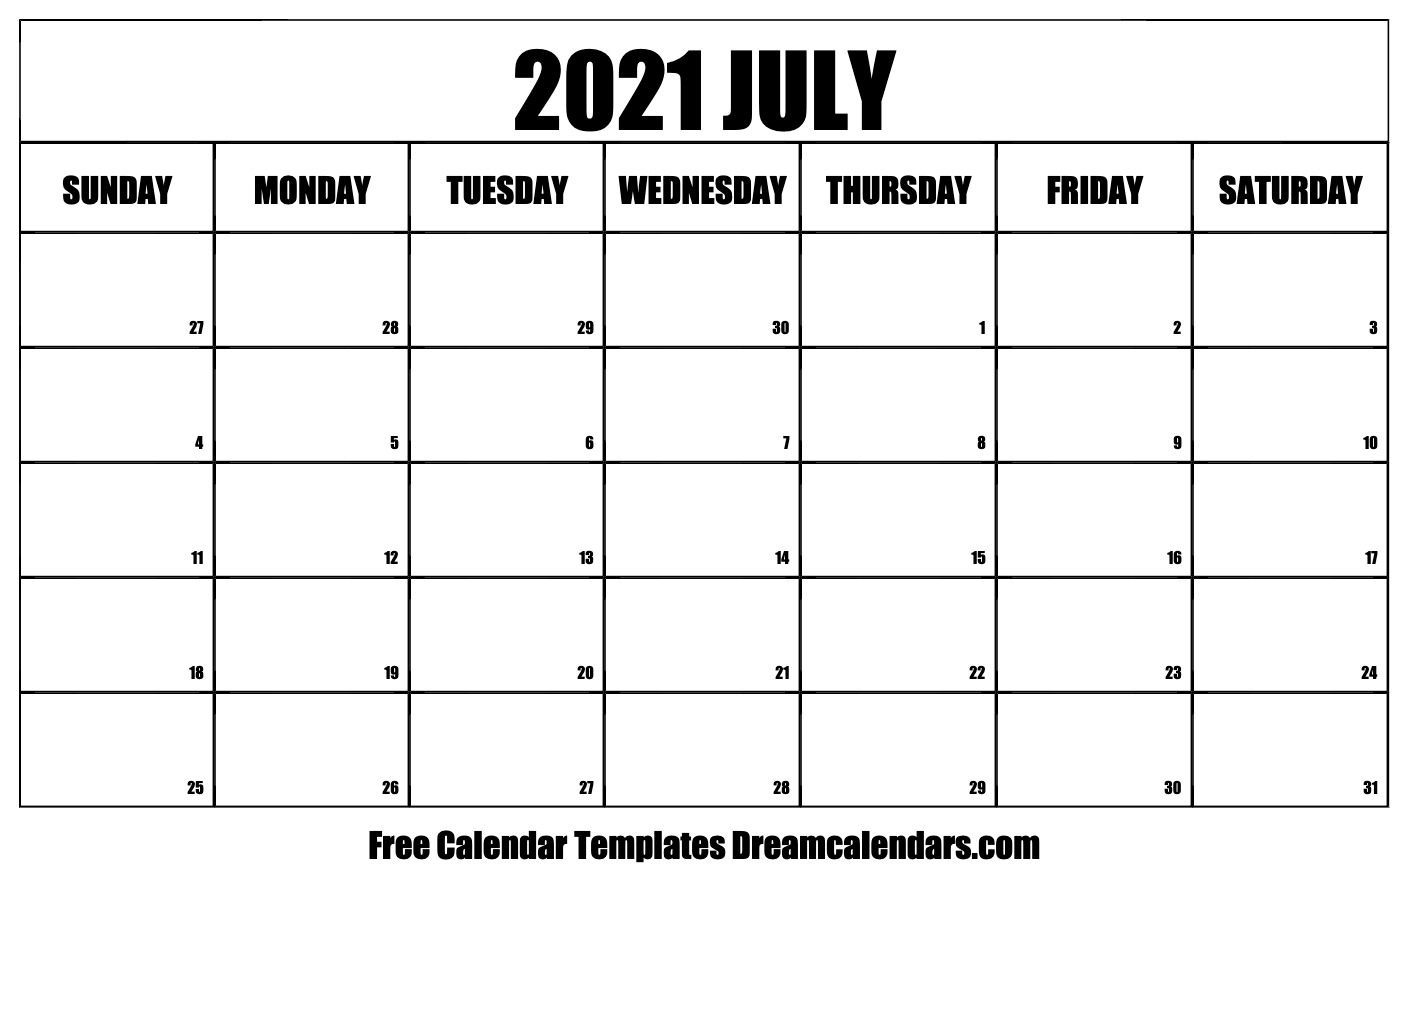 July 2021 Calendar Free Blank Printable Templates 1